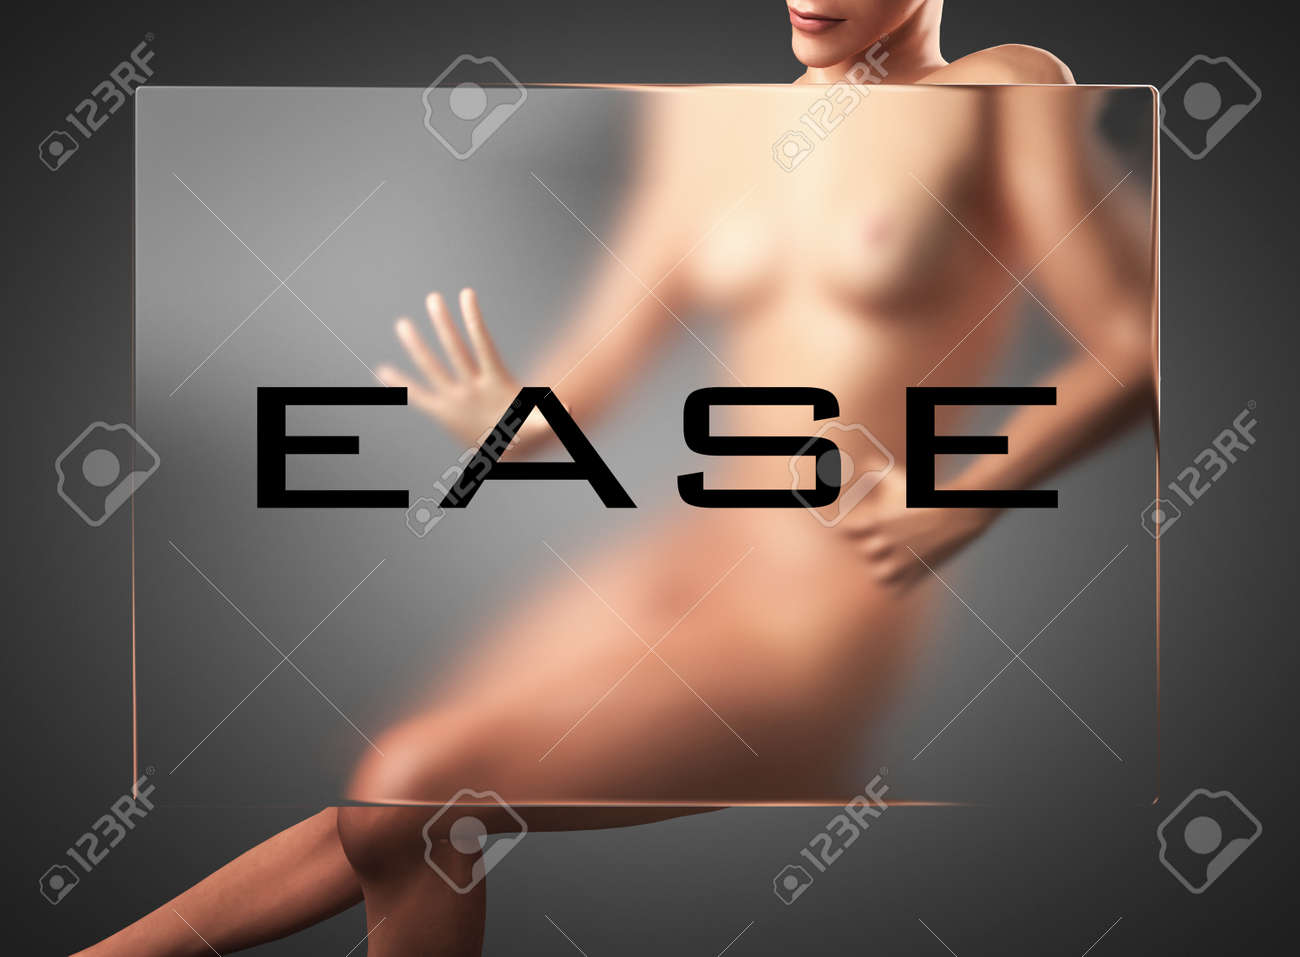 word on glass billboard with woman Stock Photo - 21628772